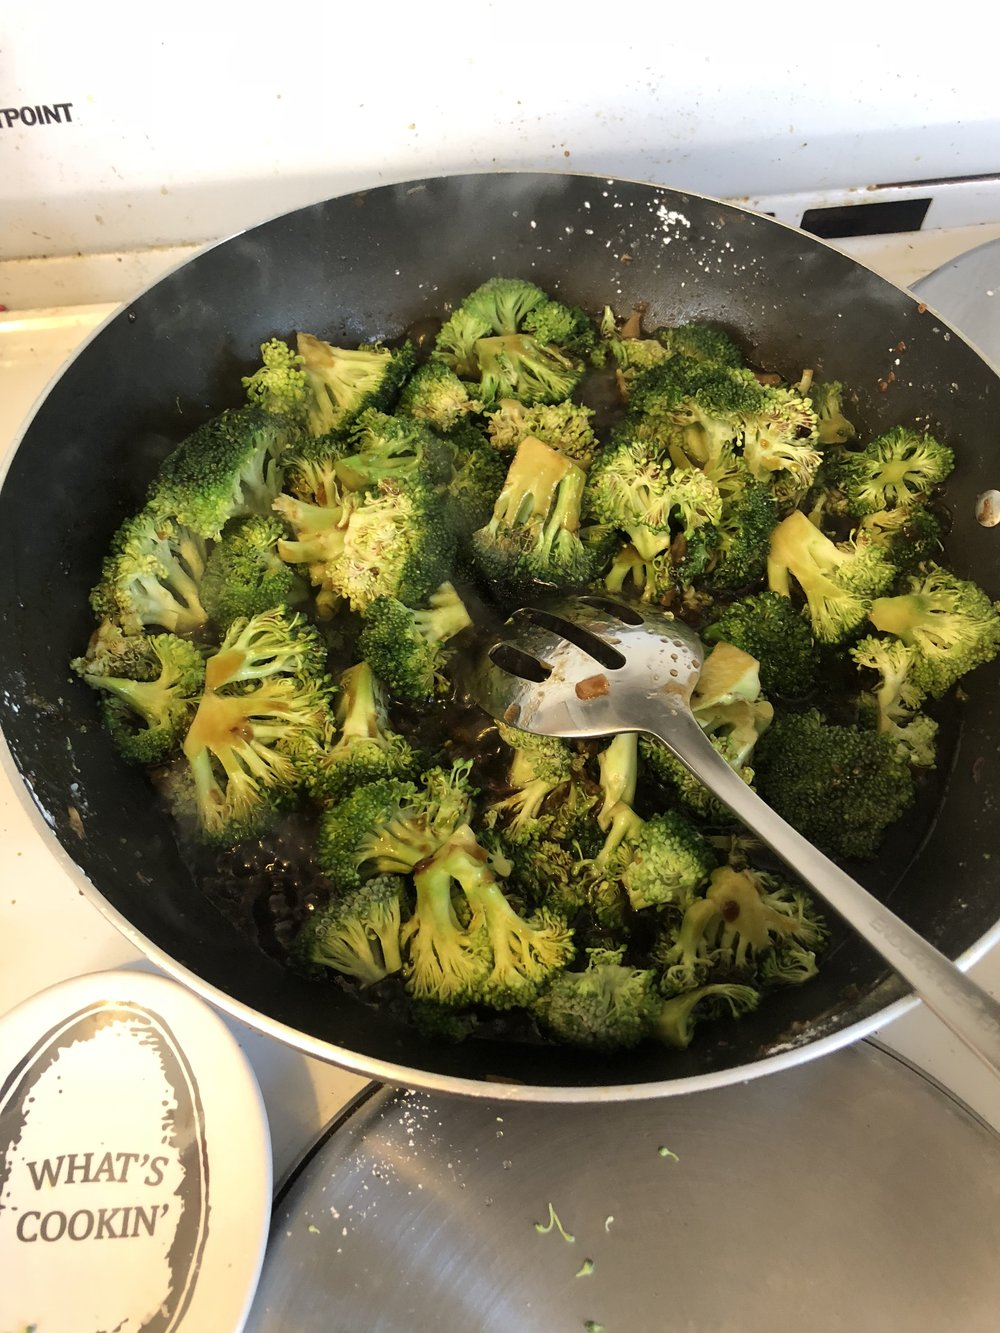 Add the broccoli to the pan and add the reserved liquid. Cook for 5-6 minutes and then add the beef. Stir and serve hot!